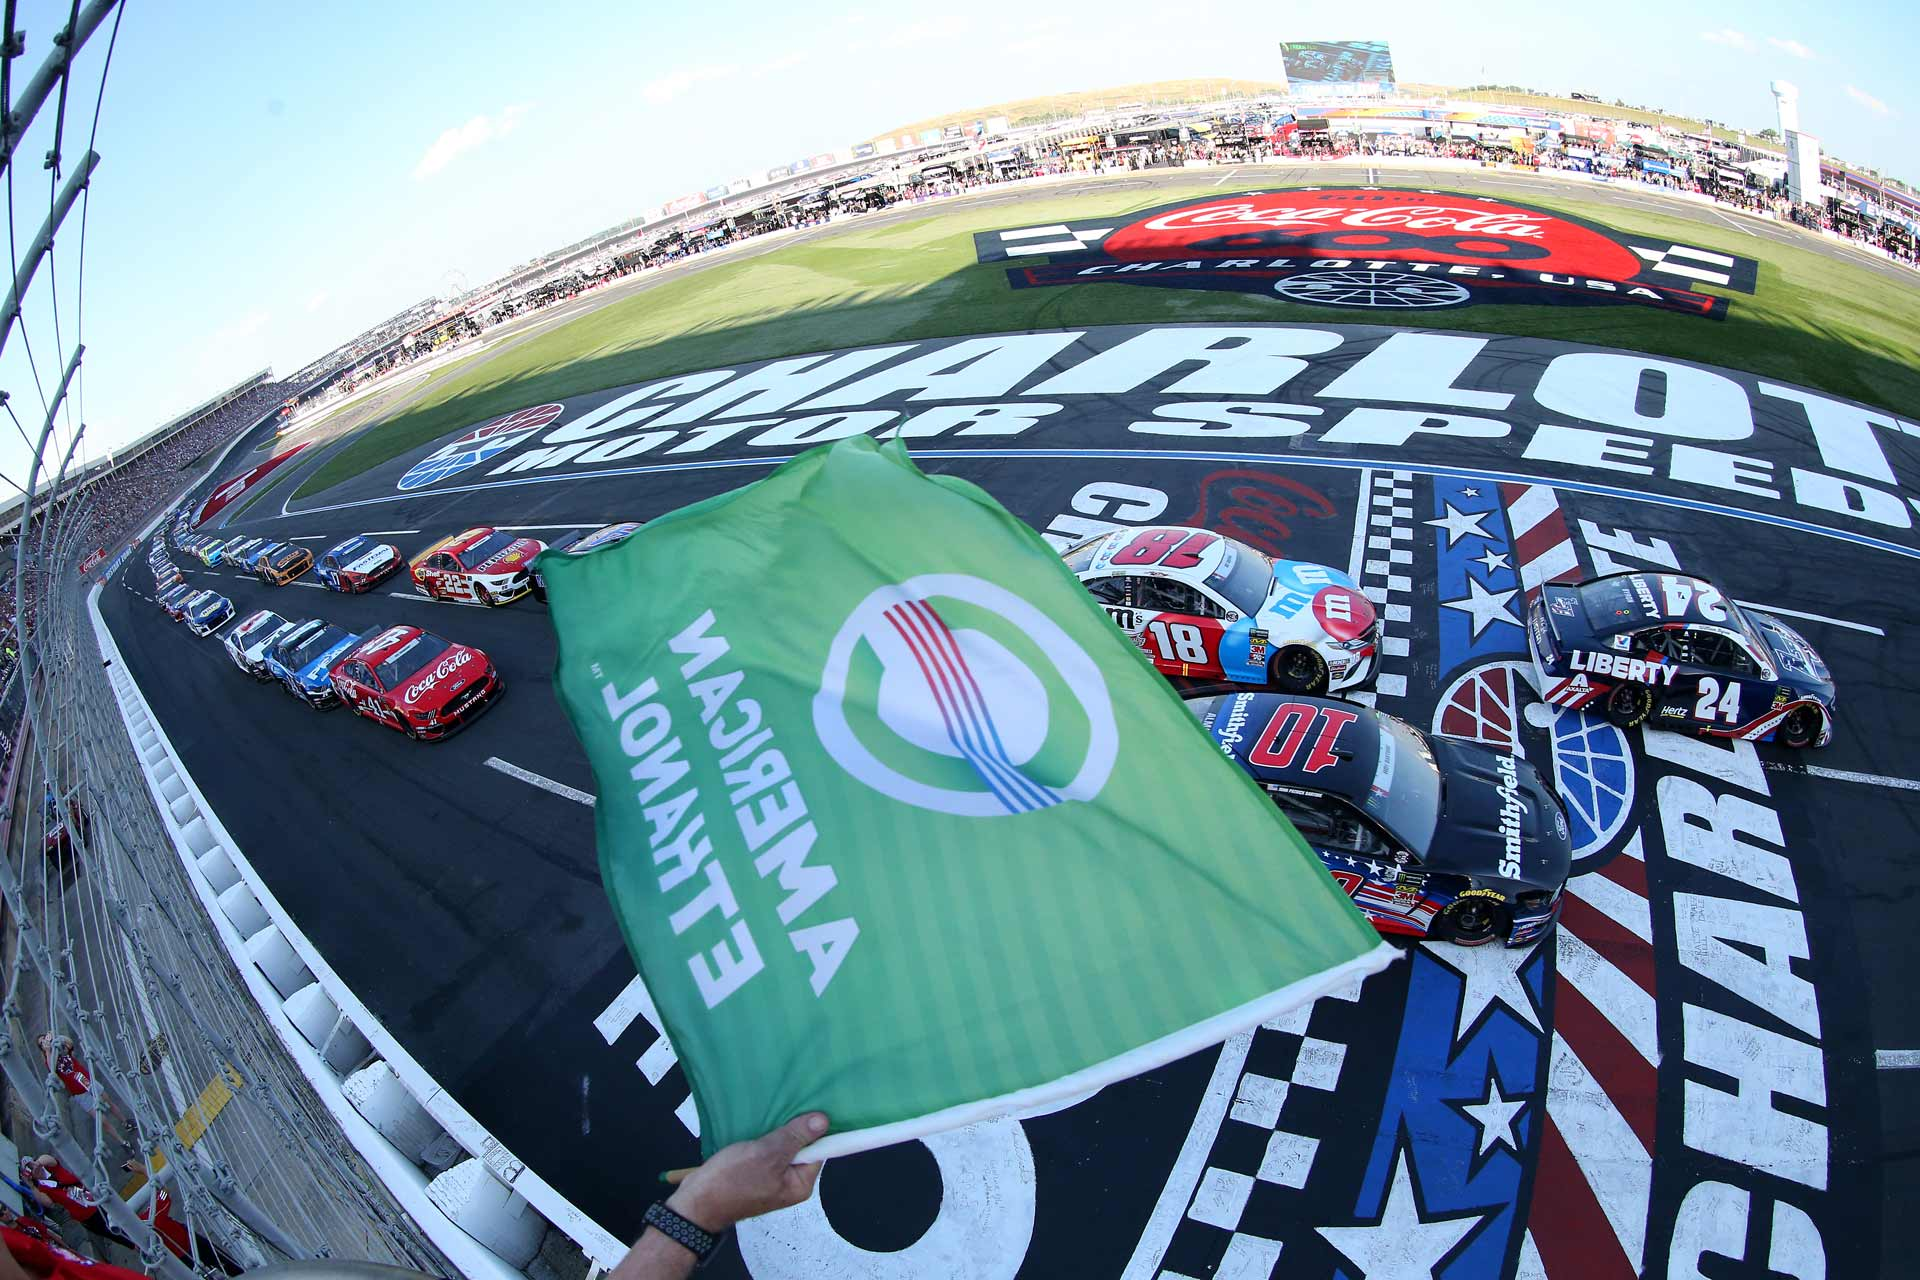 The 2020 NASCAR season is set to take the green flag once again.